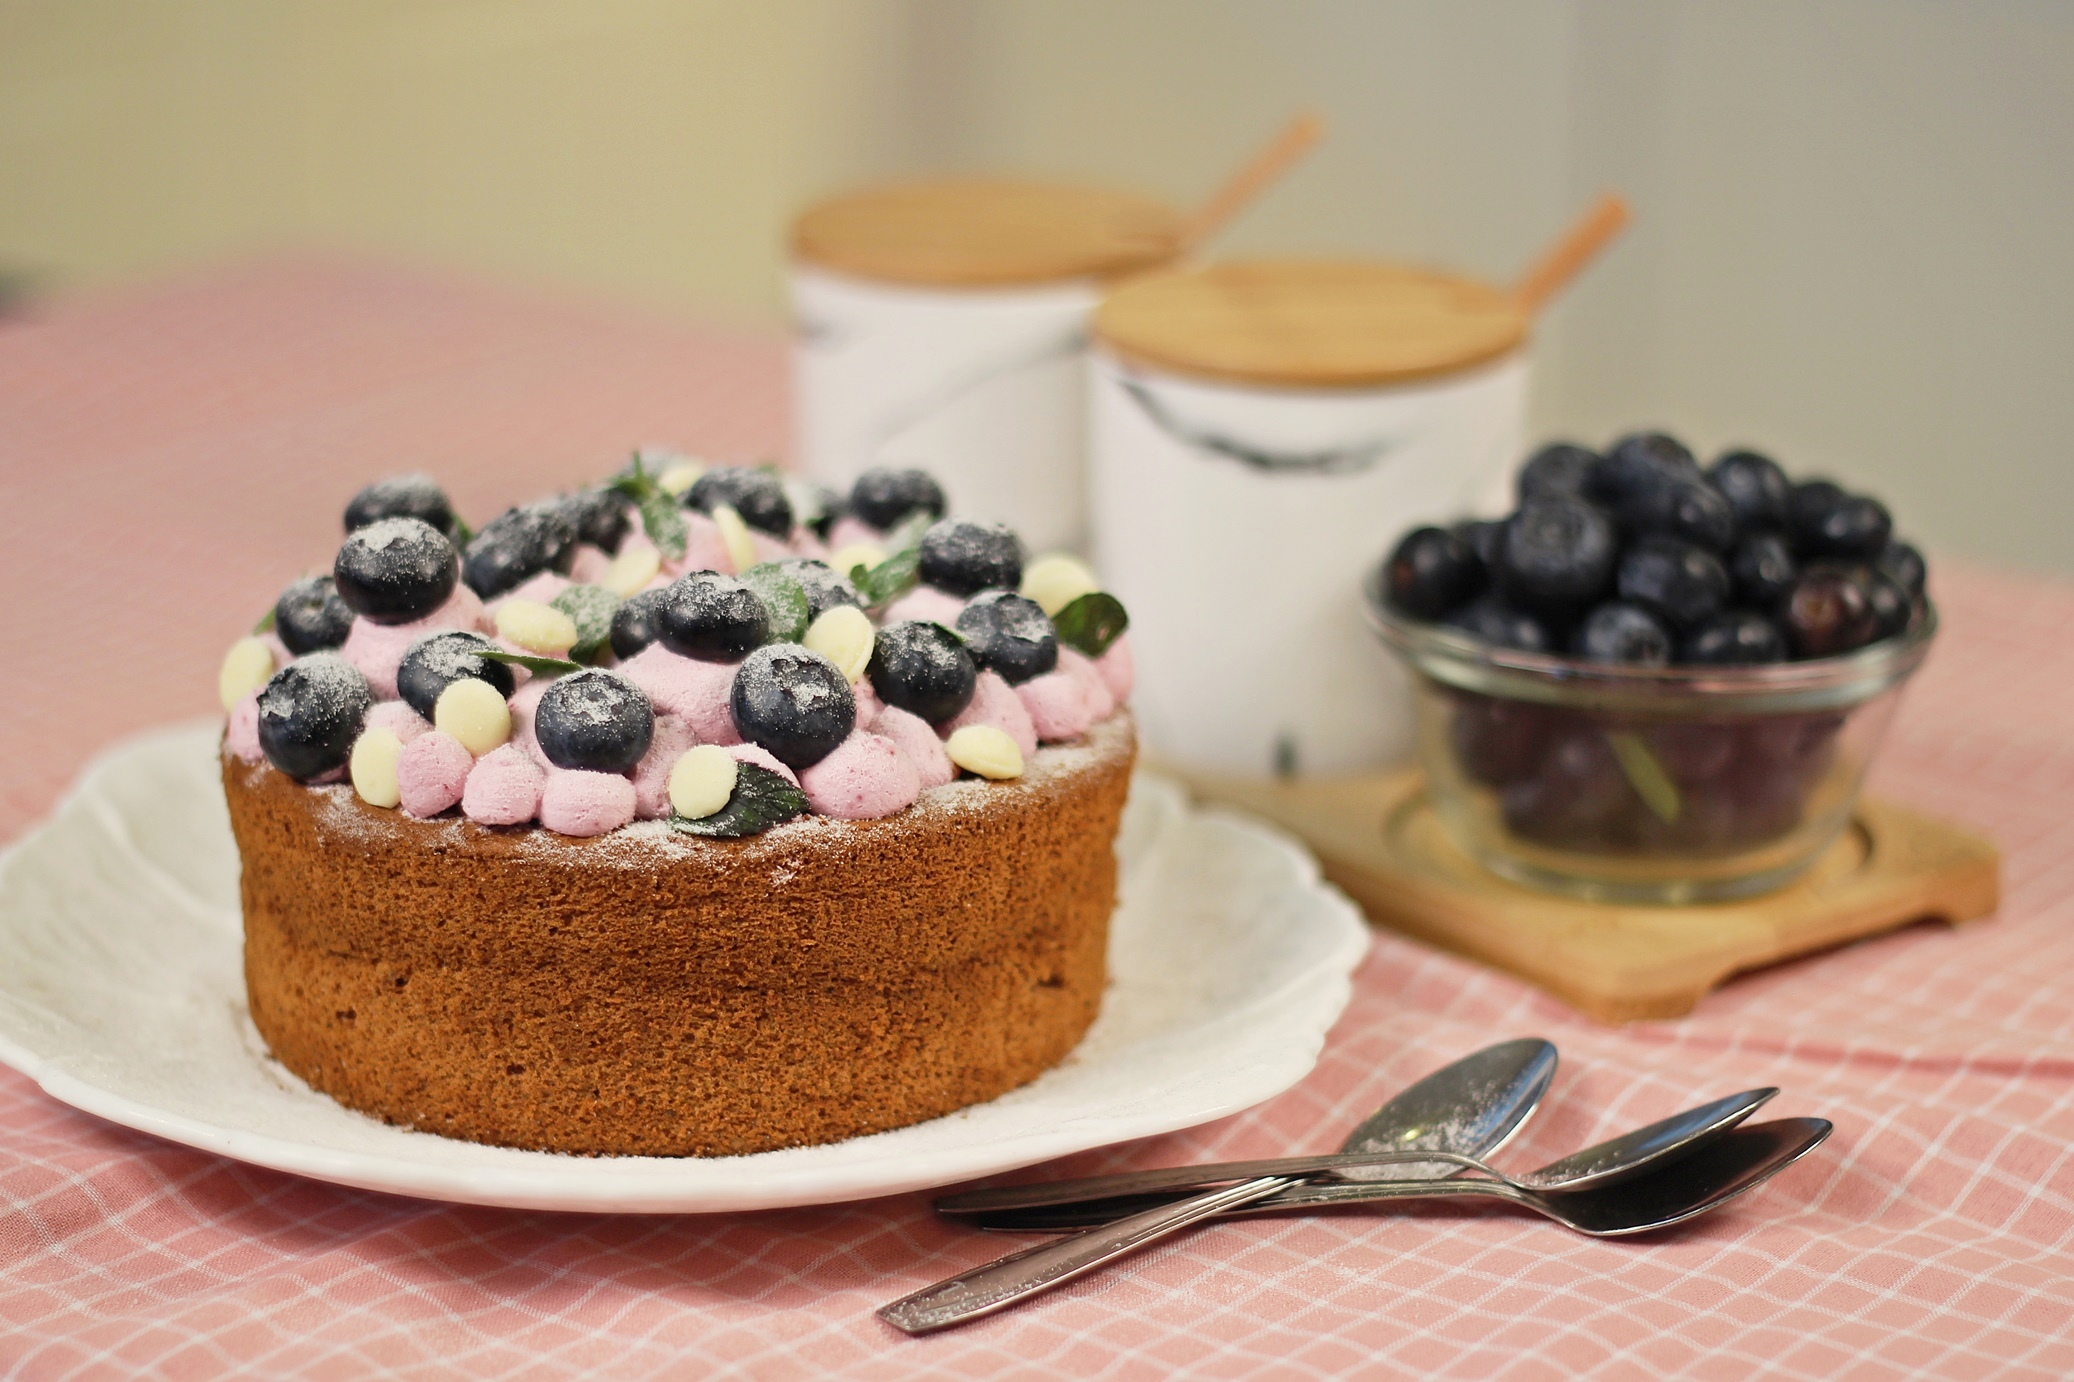 Blackcurrant Sponge Cake with Panasonic Cubie Oven